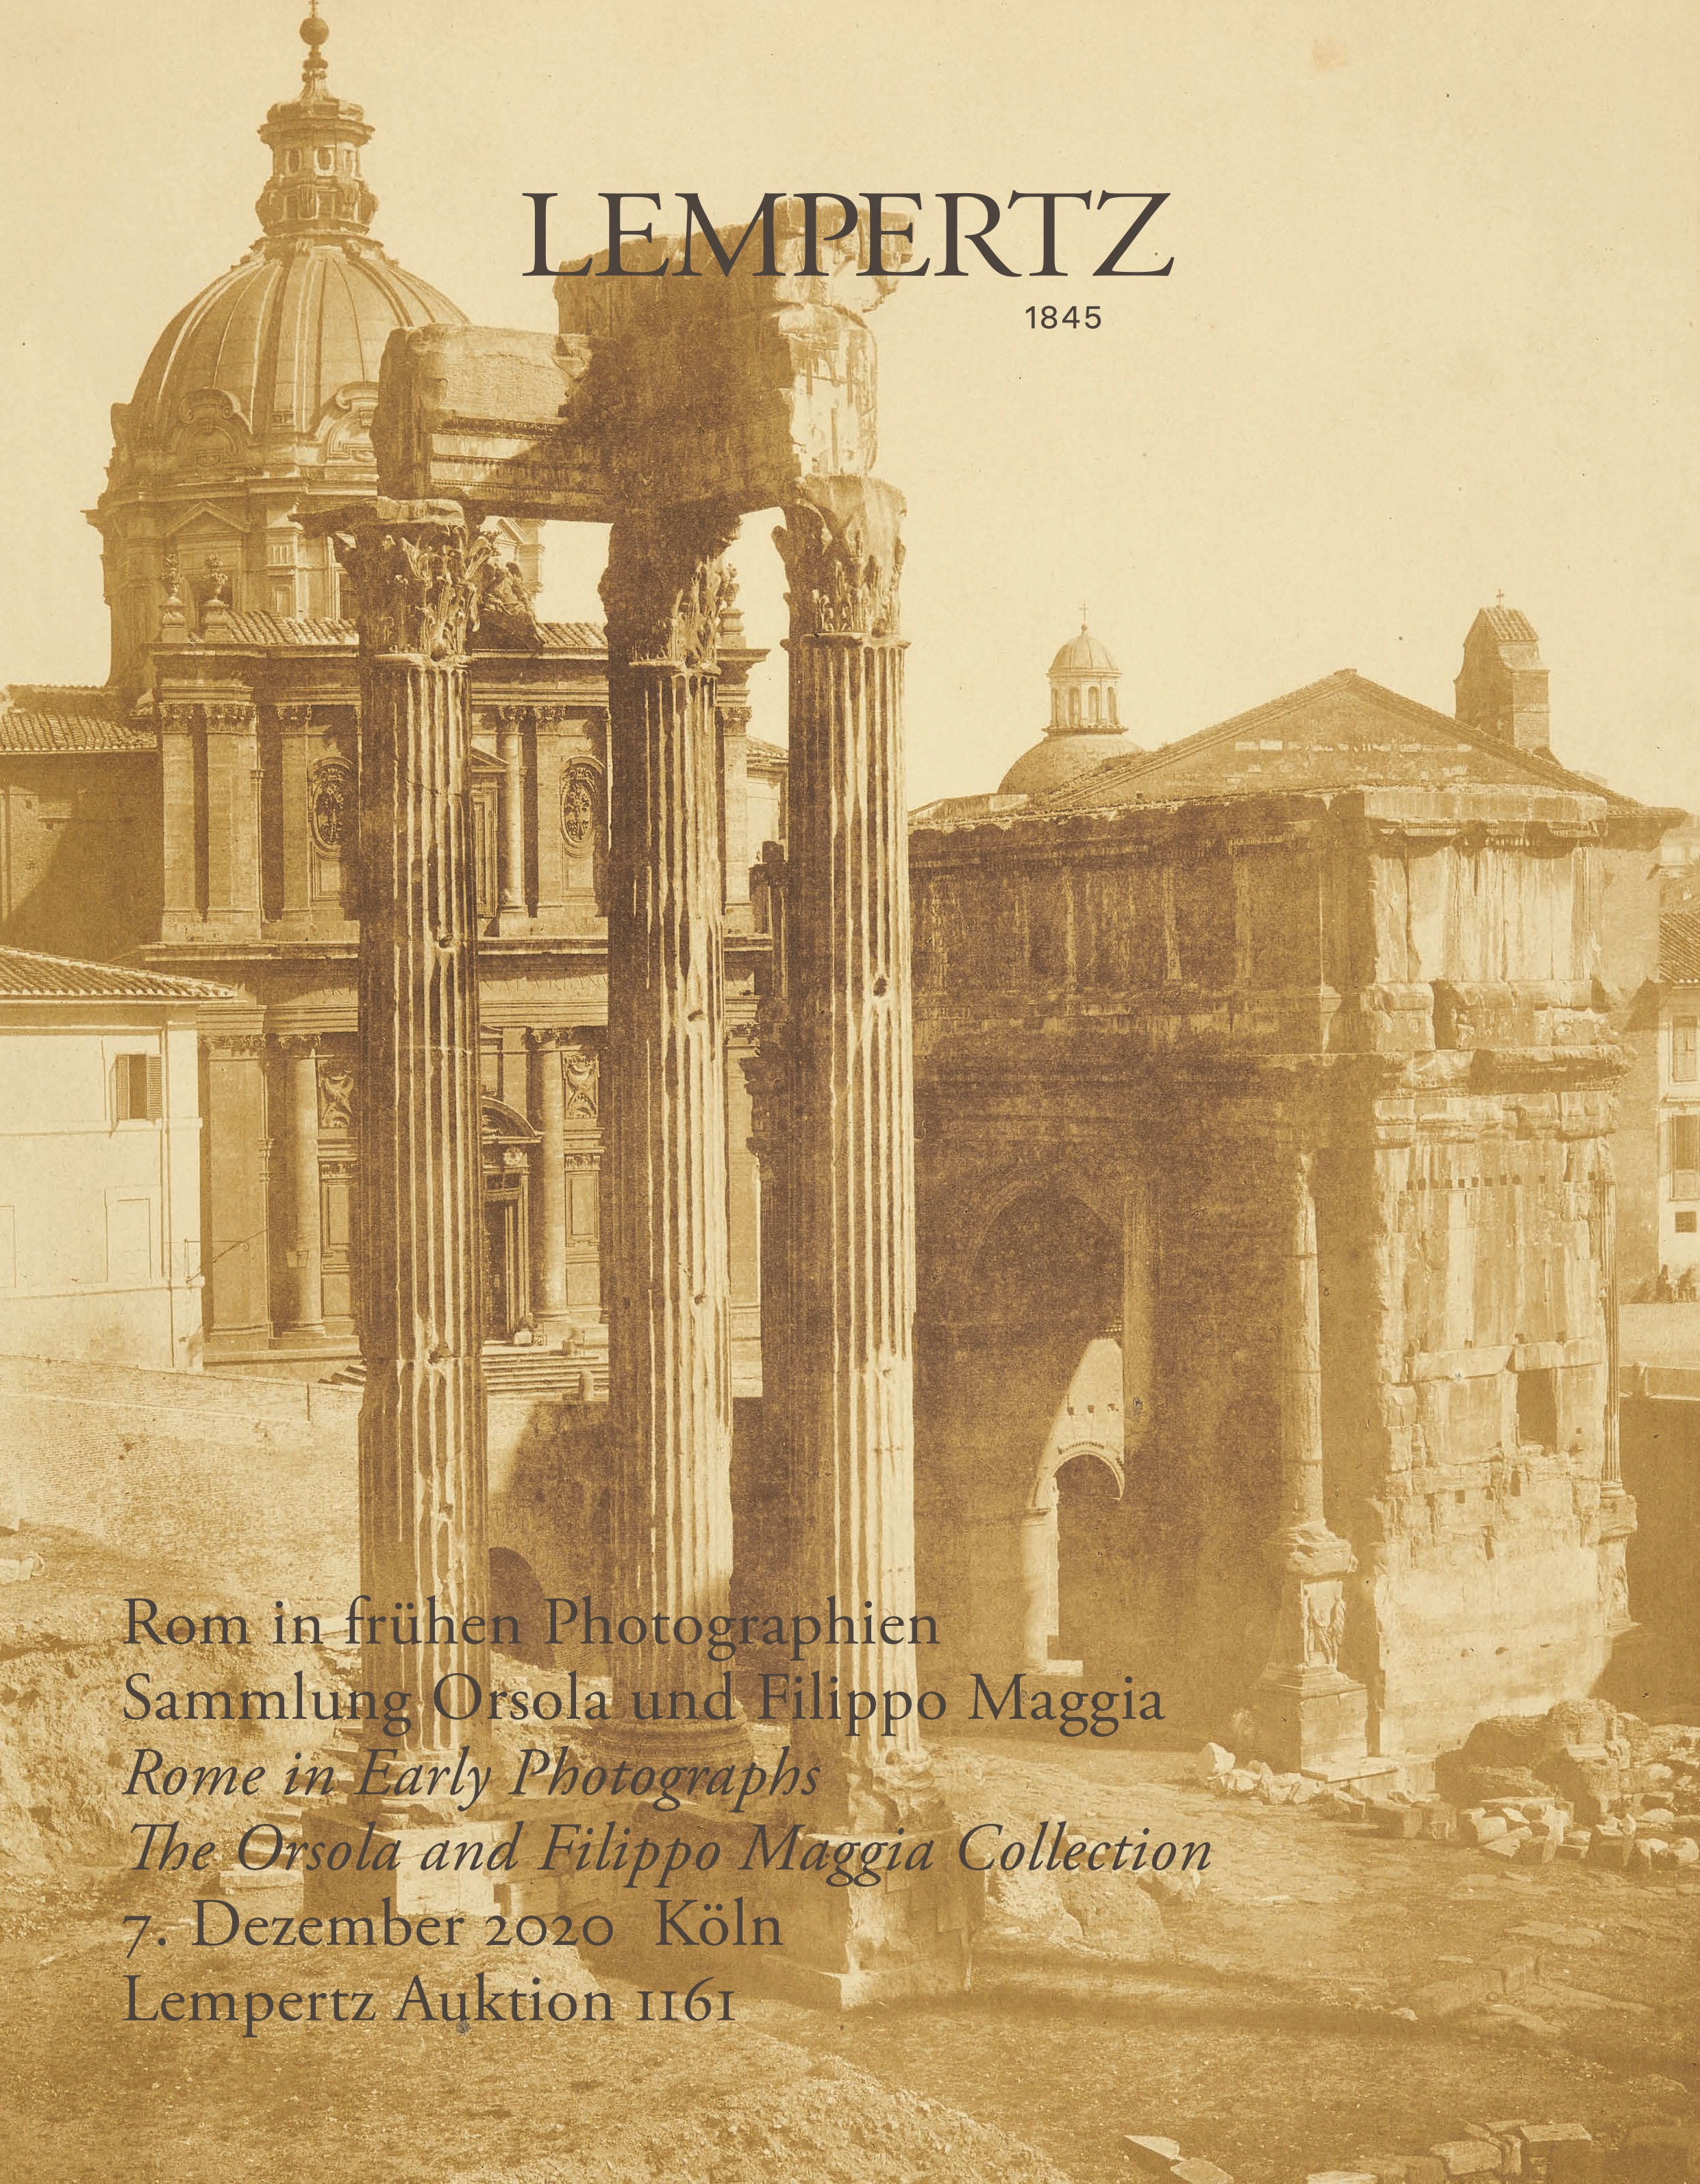 Catalogue - Rome in Early Photographs - The Orsola and Filippo Maggia Collection - Online Catalogue - Auction 1161 – Purchase valuable works of art at the next Lempertz-Auction!